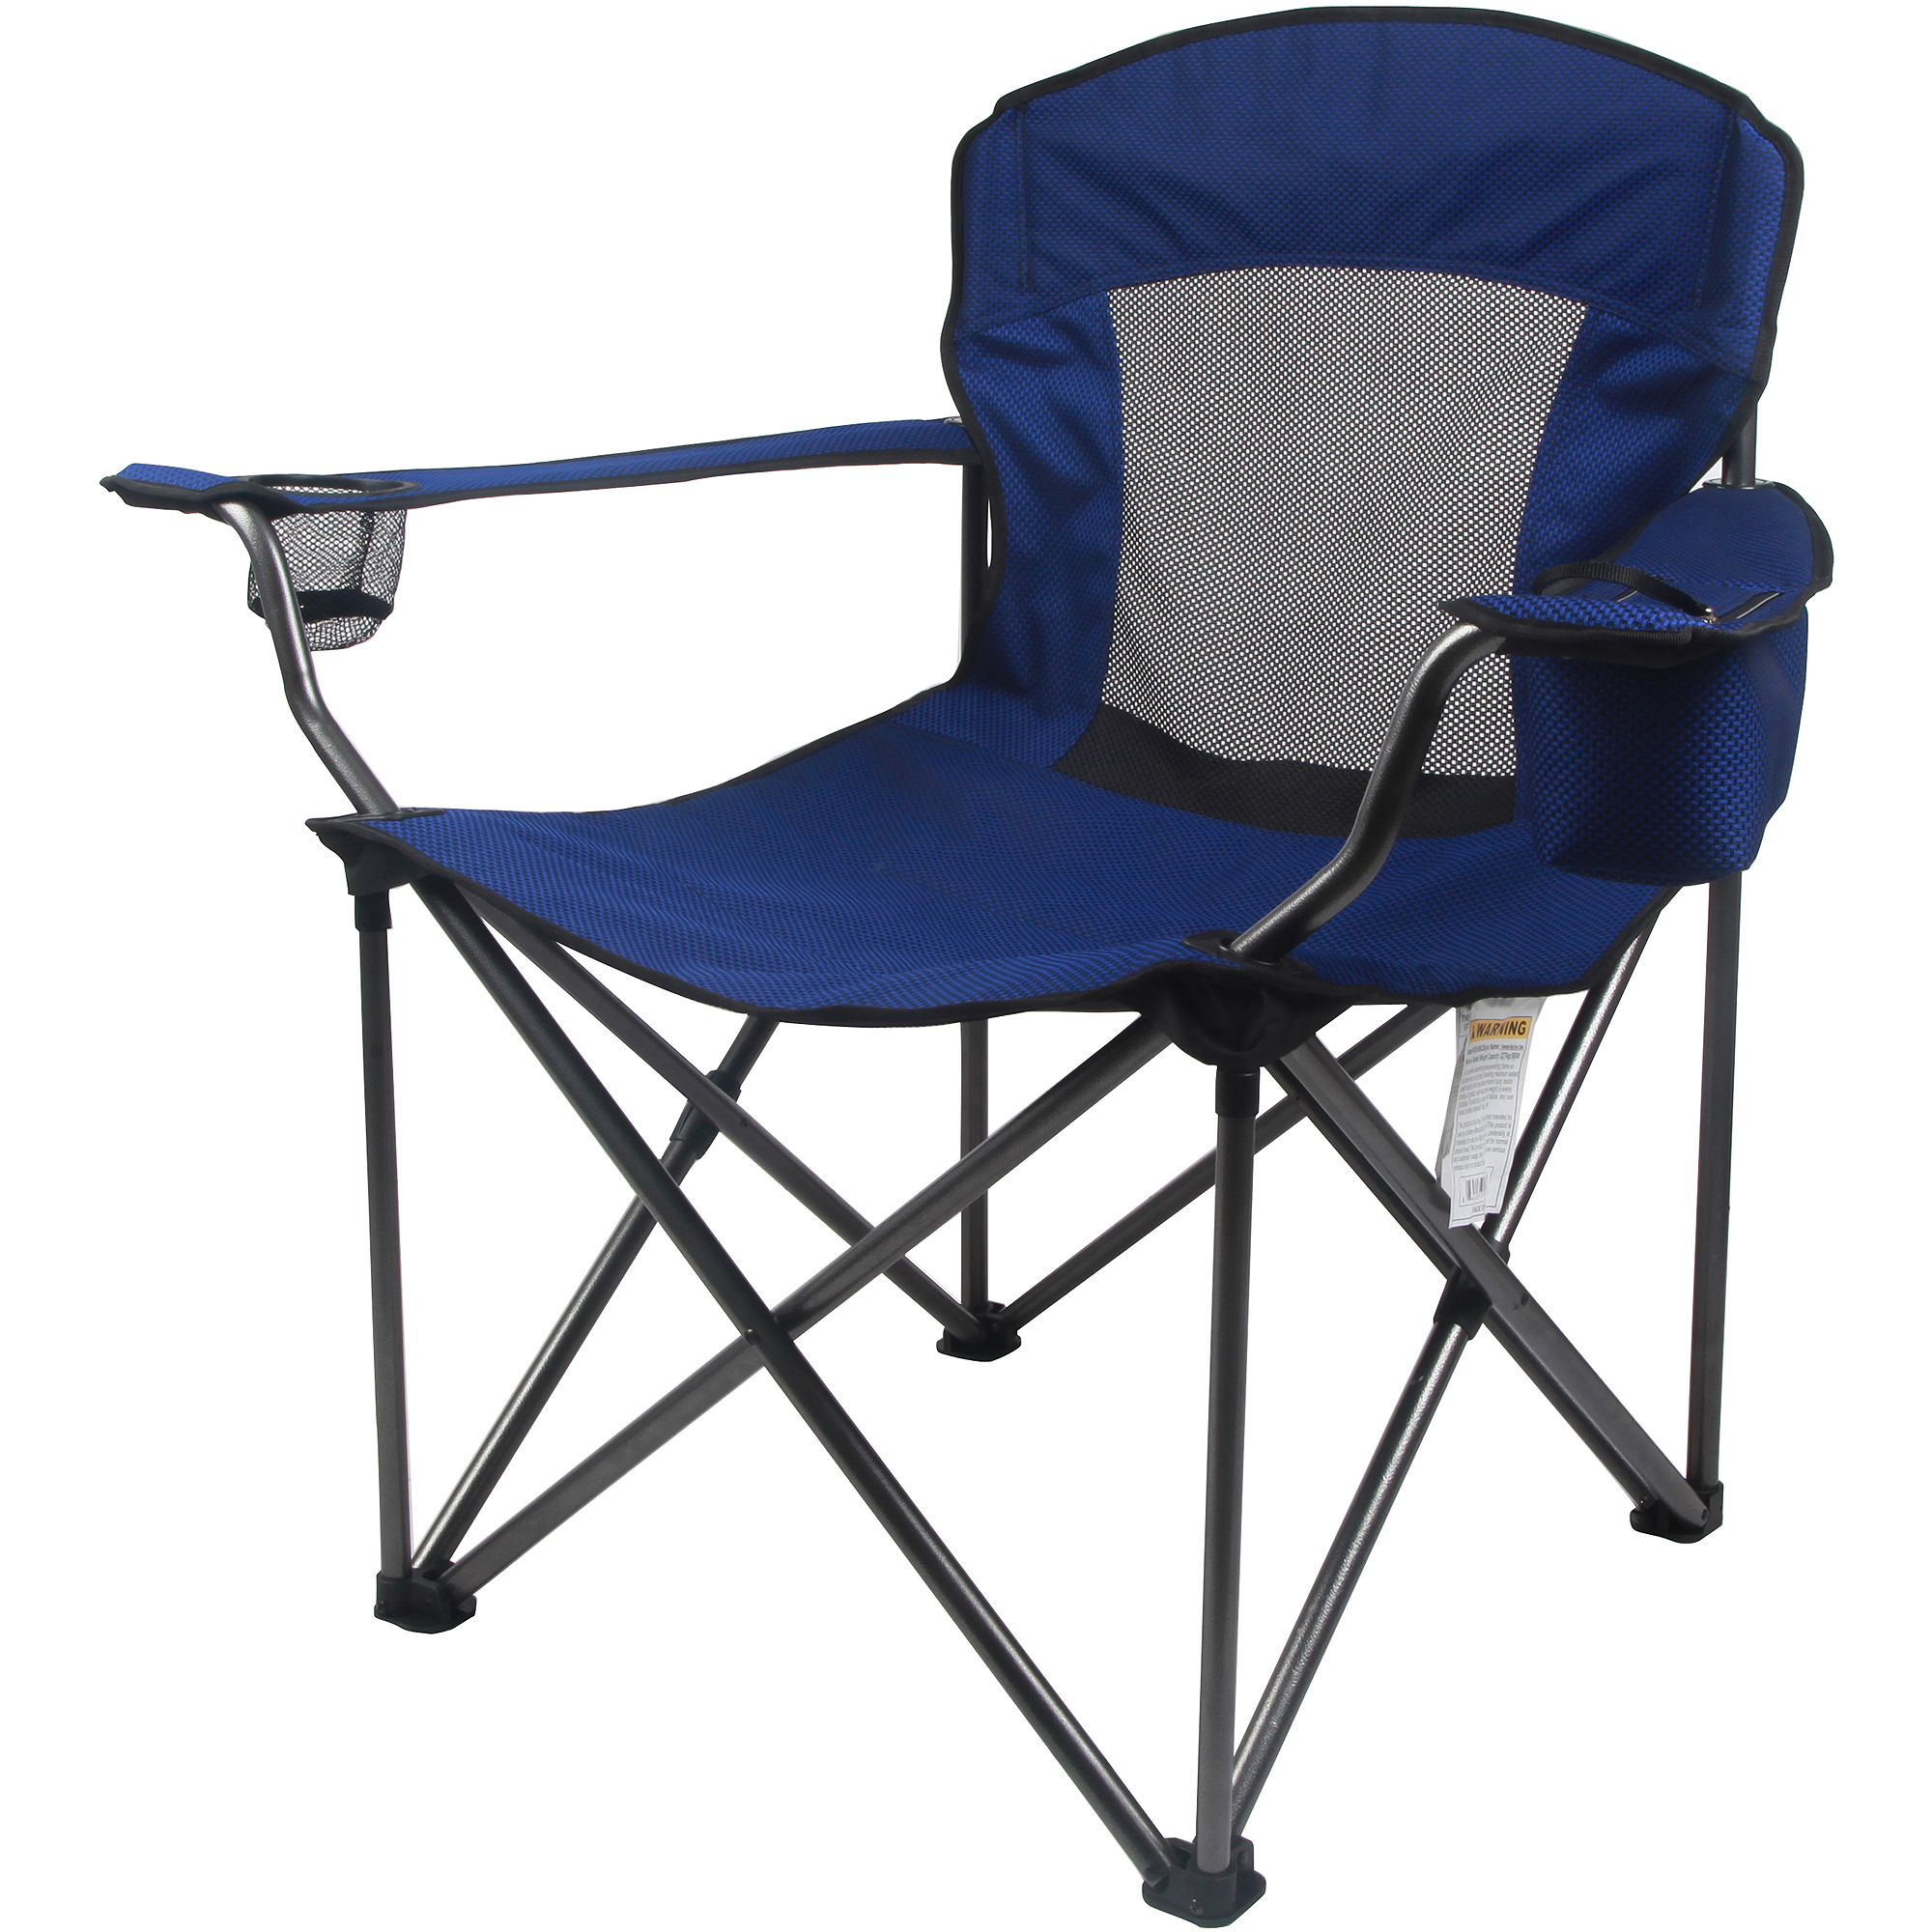 folding chairs walmart lifetime adirondack chair sam s club ozark trail deluxe camping arm